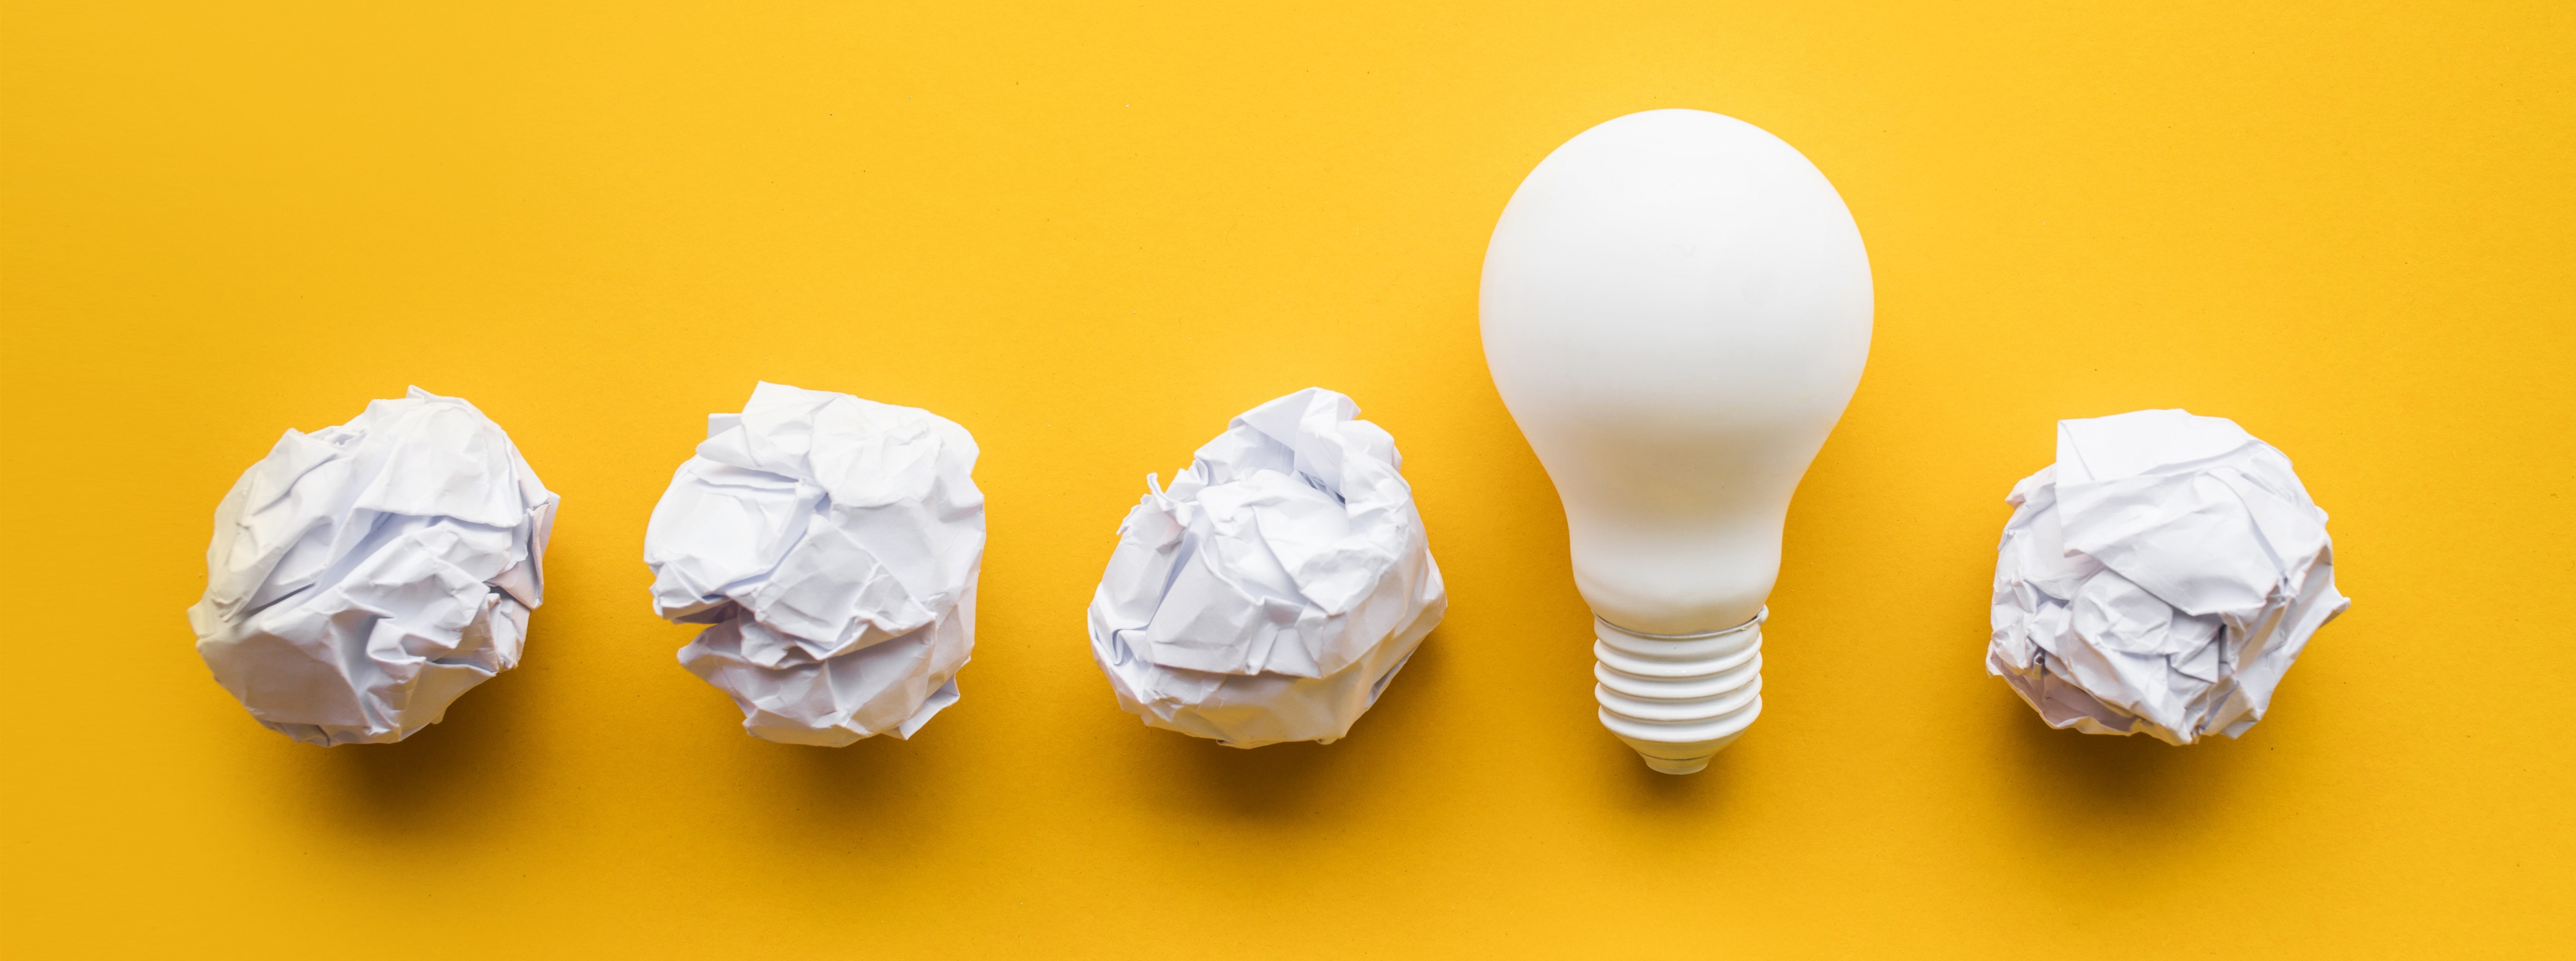 Explore Your Ideas Before Writing Code